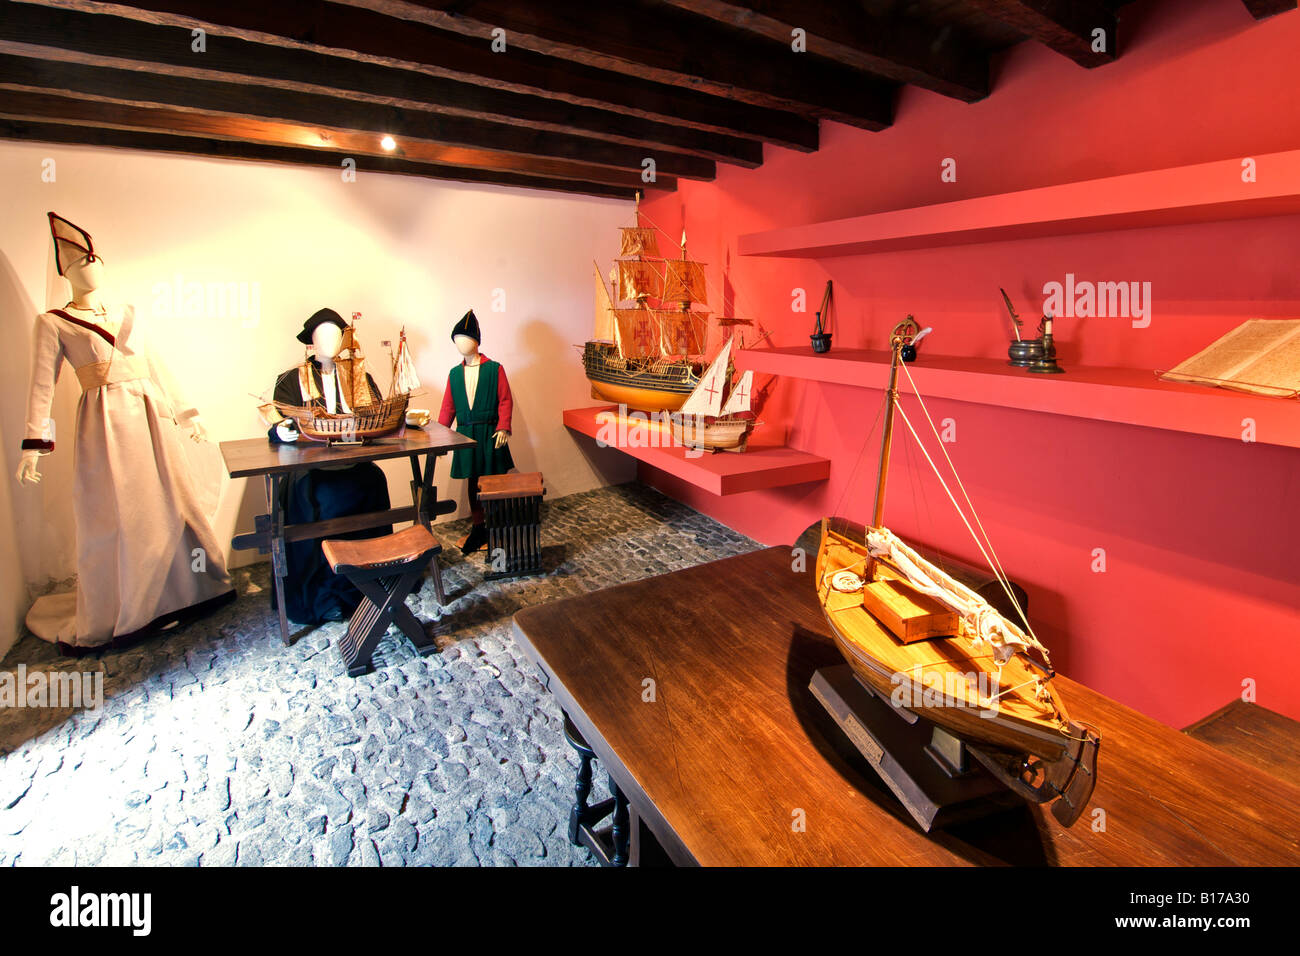 The interior of the Christopher Columbus museum on the Portuguese Atlantic island of Porto Santo. - Stock Image